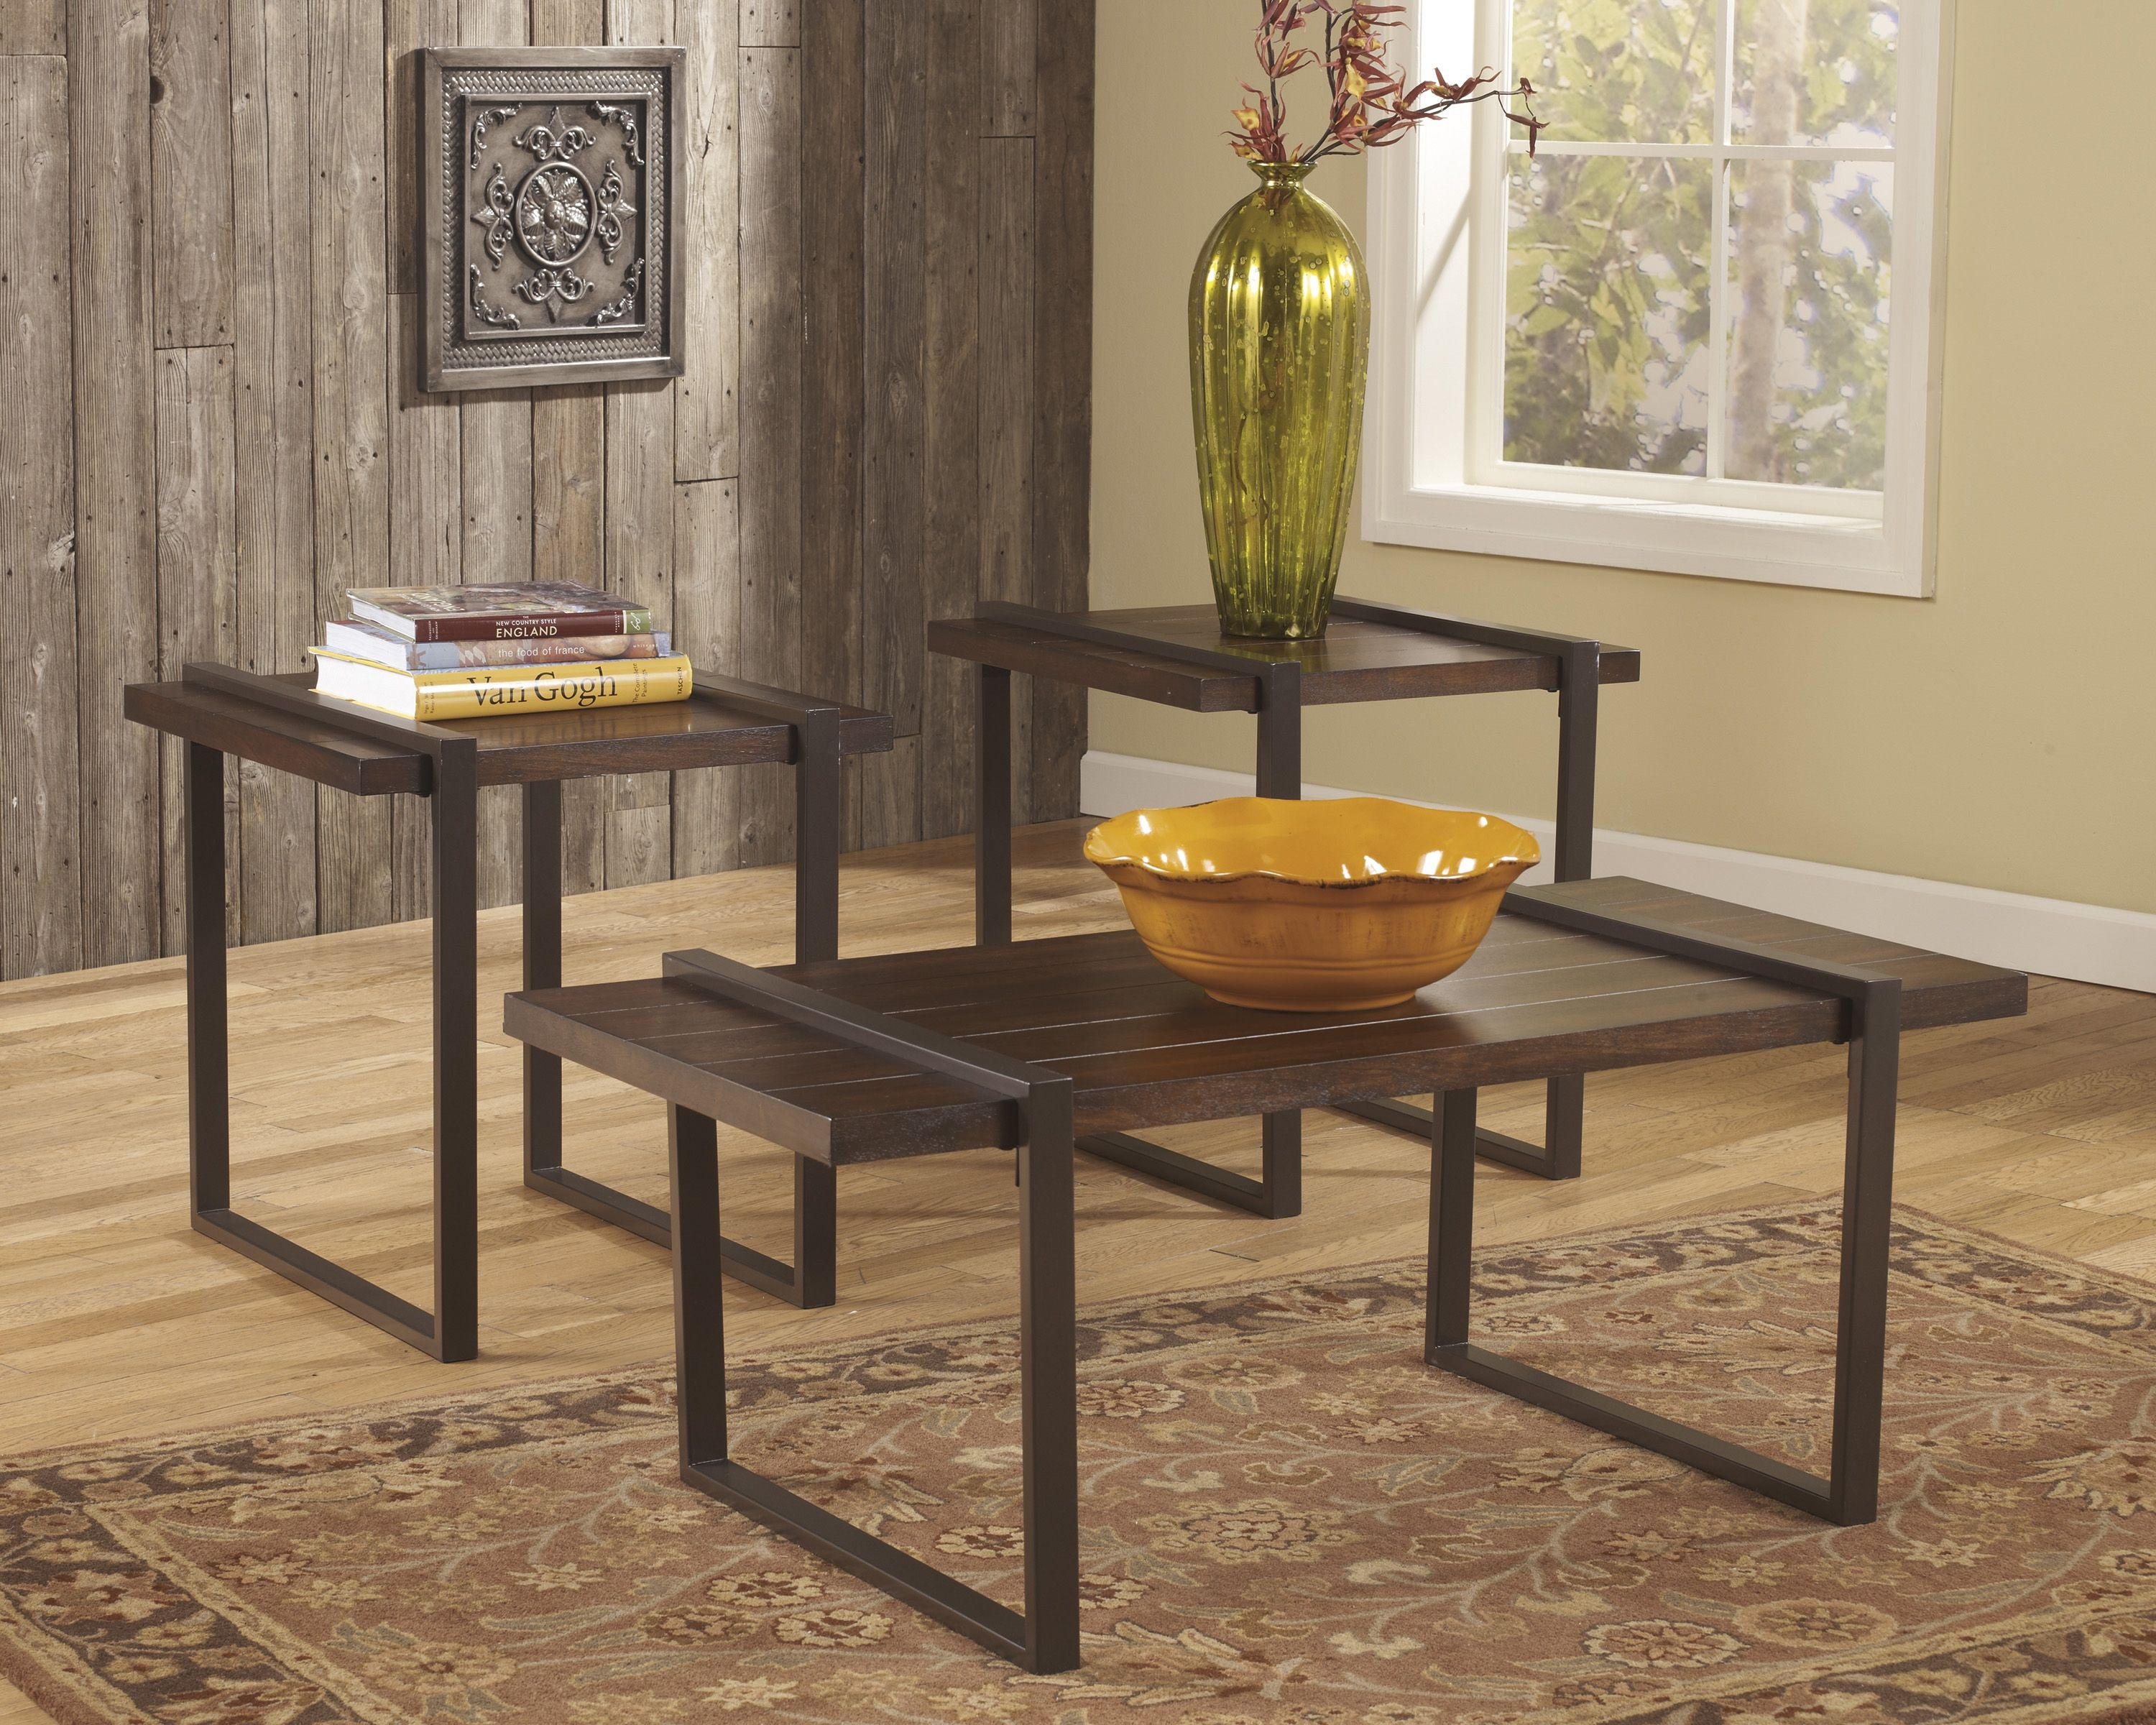 ashley furniture has great living room accent tables to go